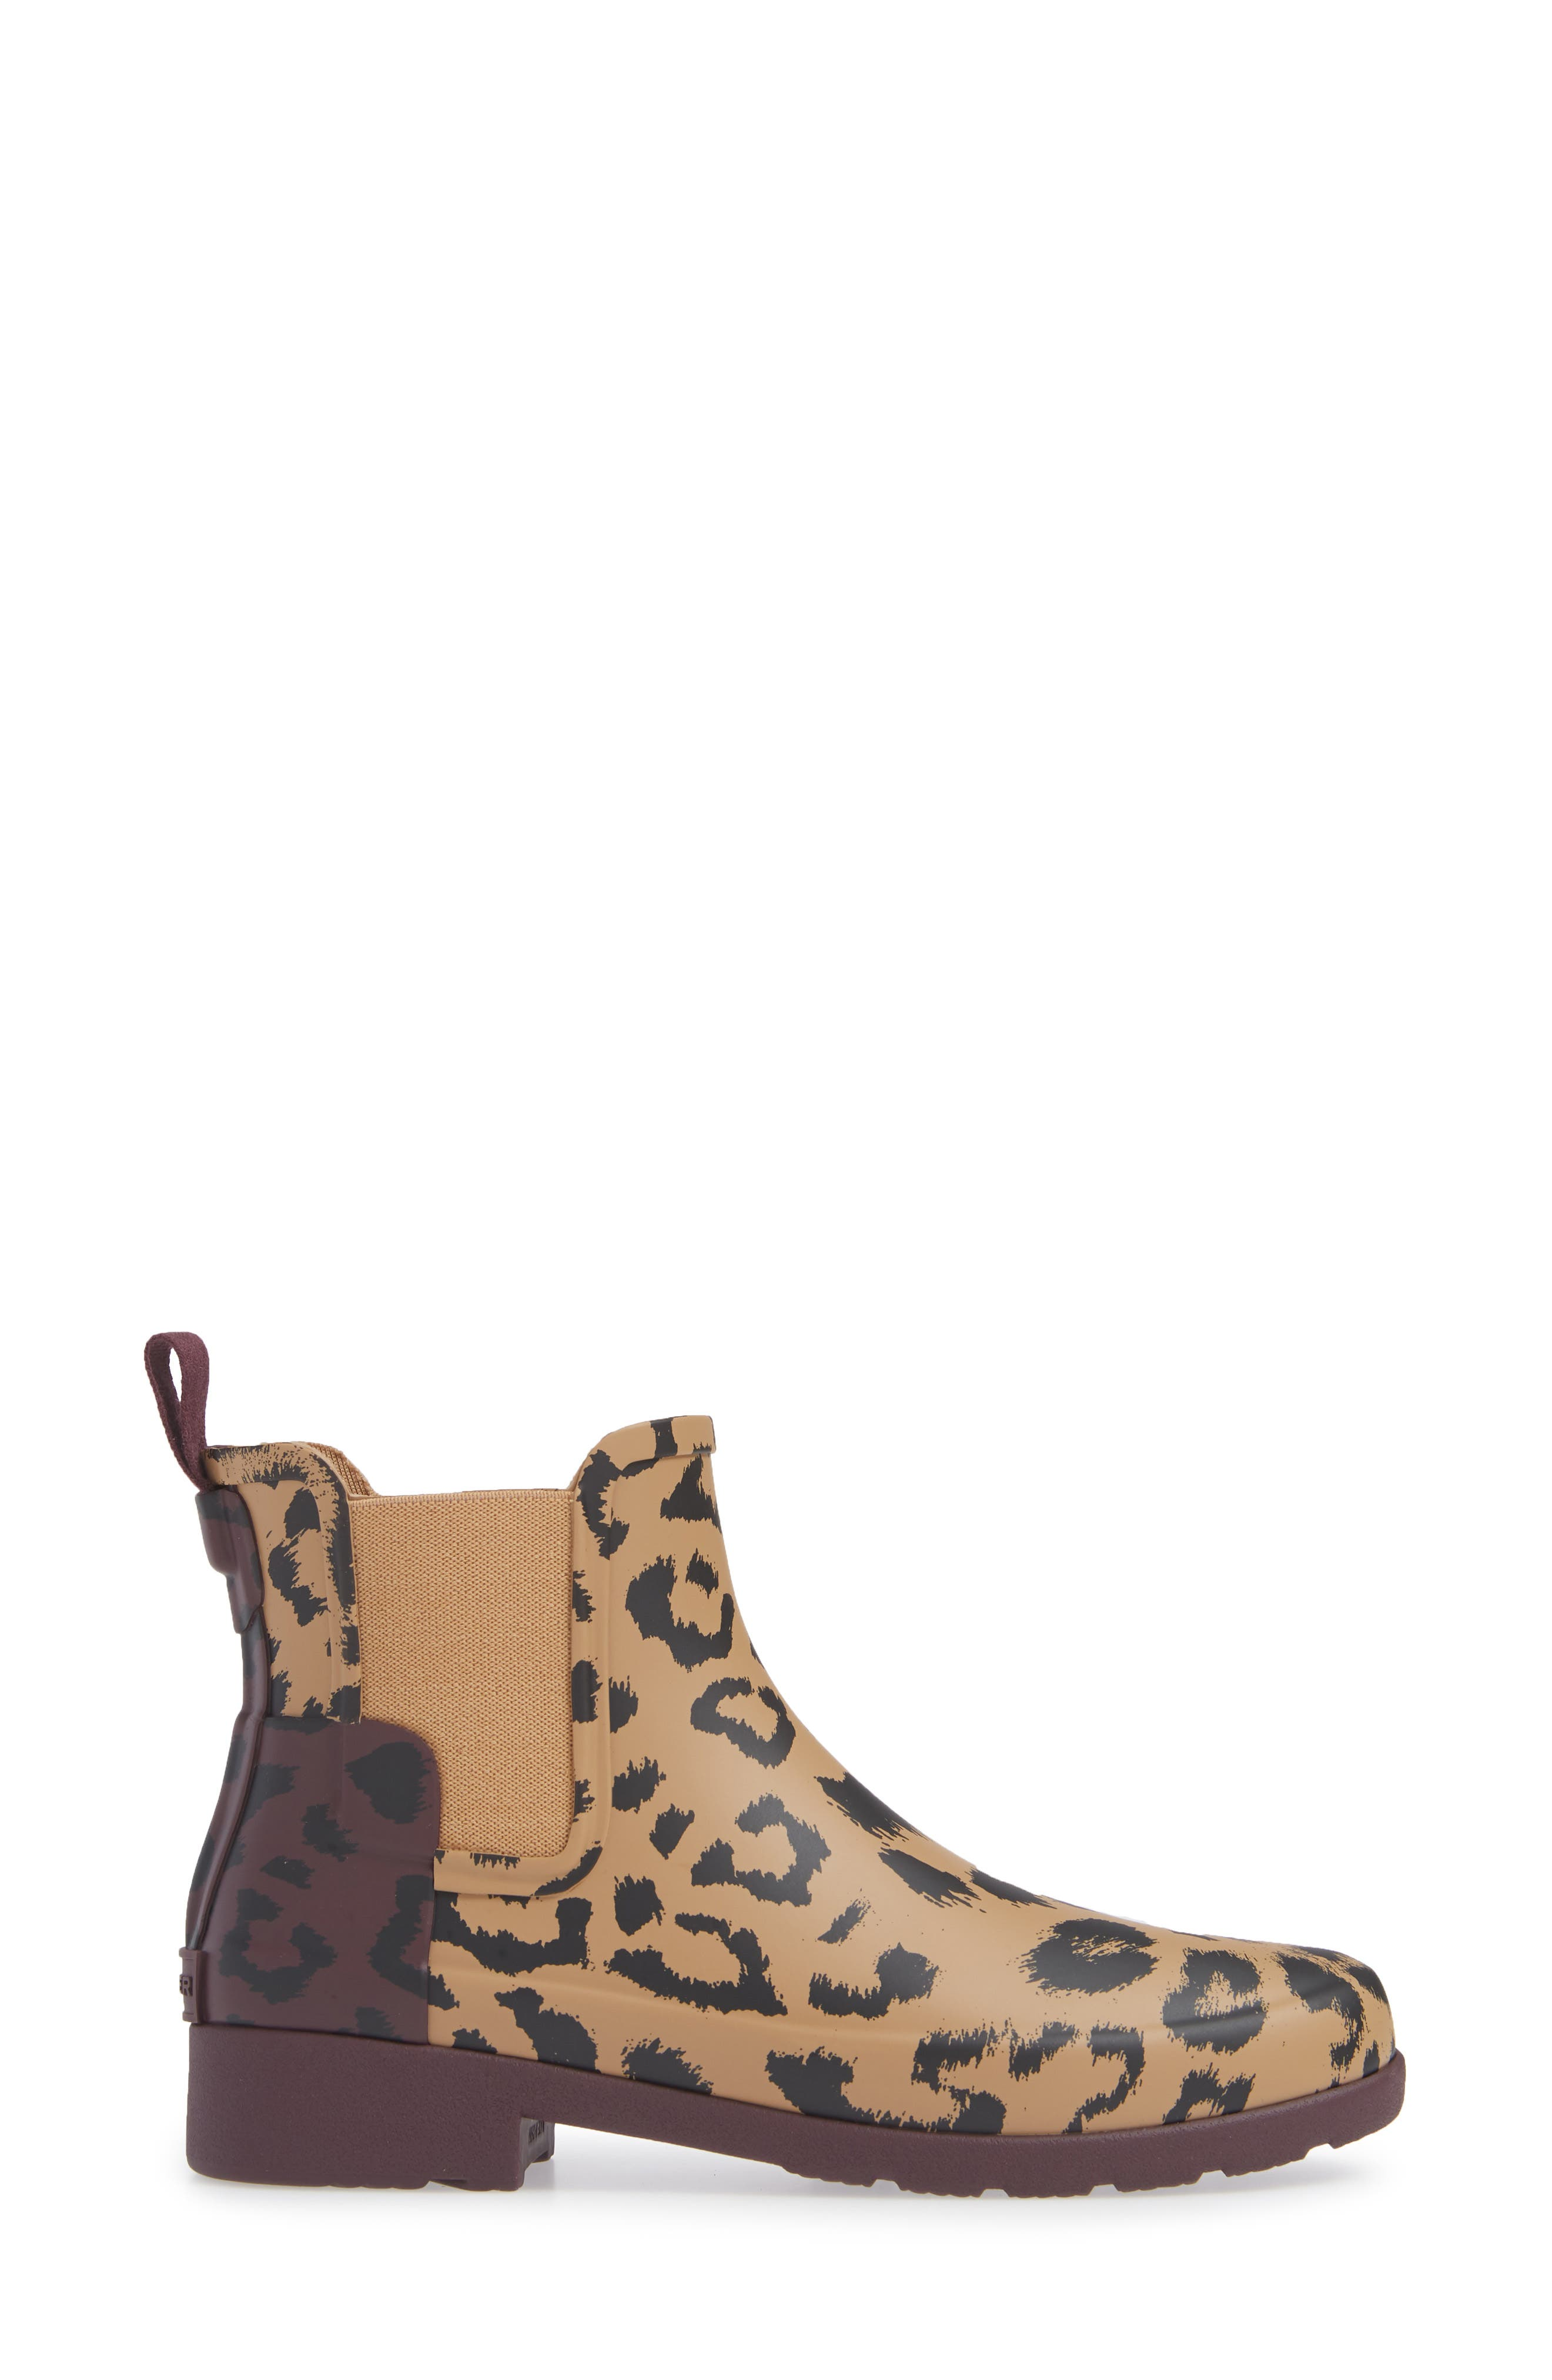 HUNTER,                             Original Leopard Print Refined Chelsea Waterproof Rain Boot,                             Alternate thumbnail 3, color,                             242